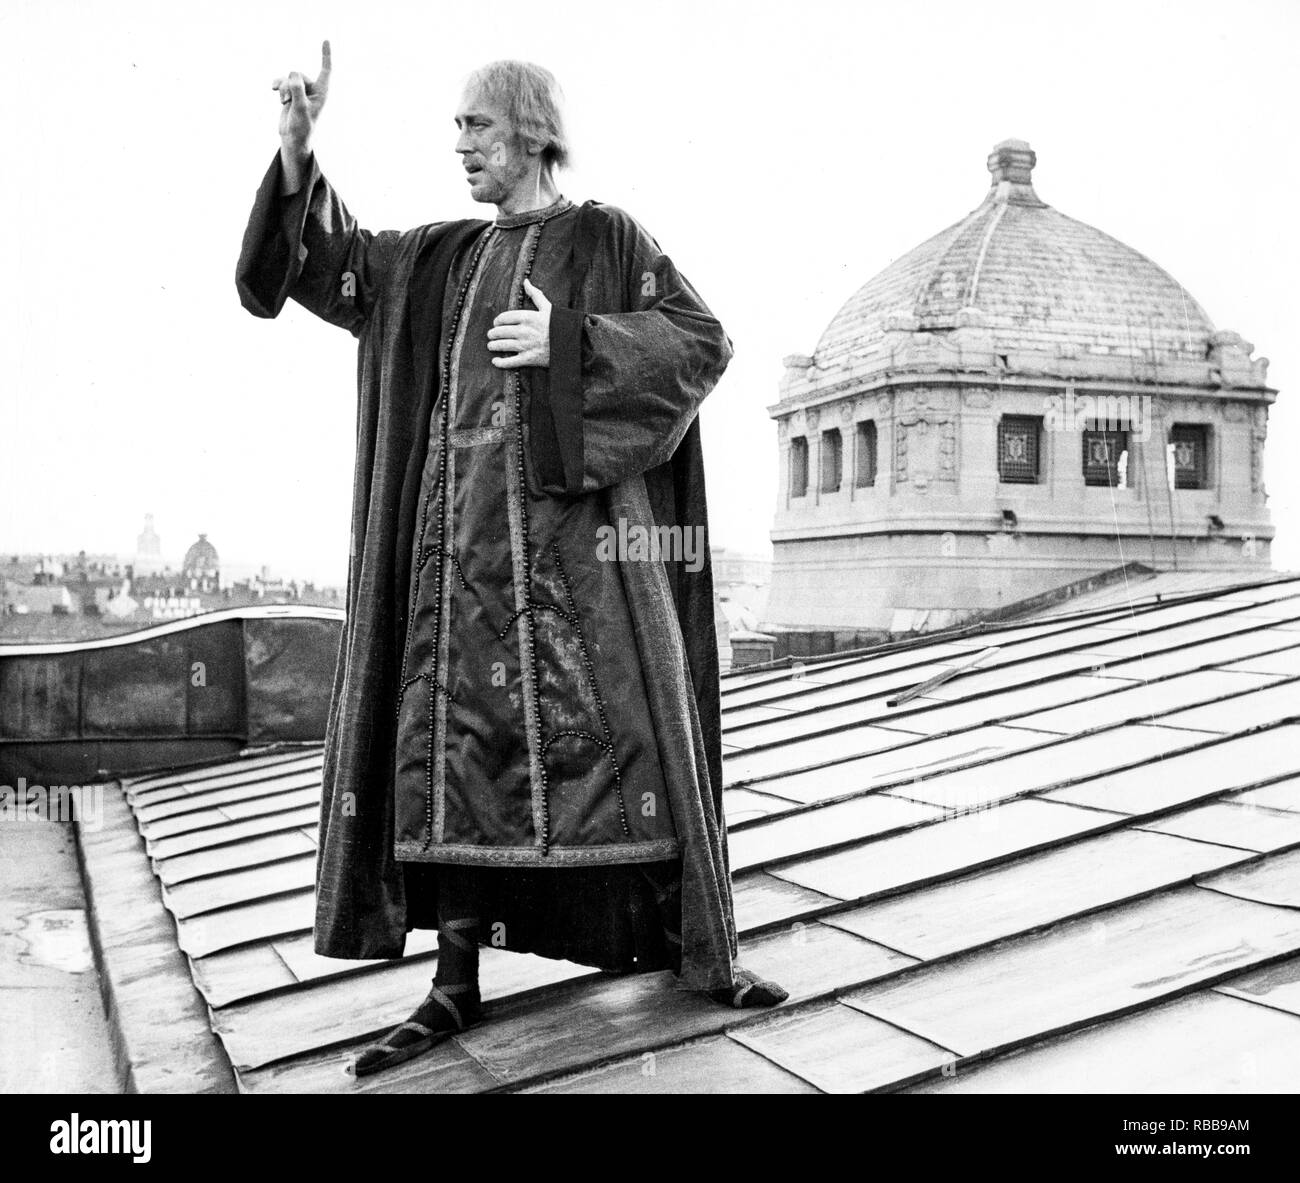 max von sydow, Henry IV, 1968 - Stock Image